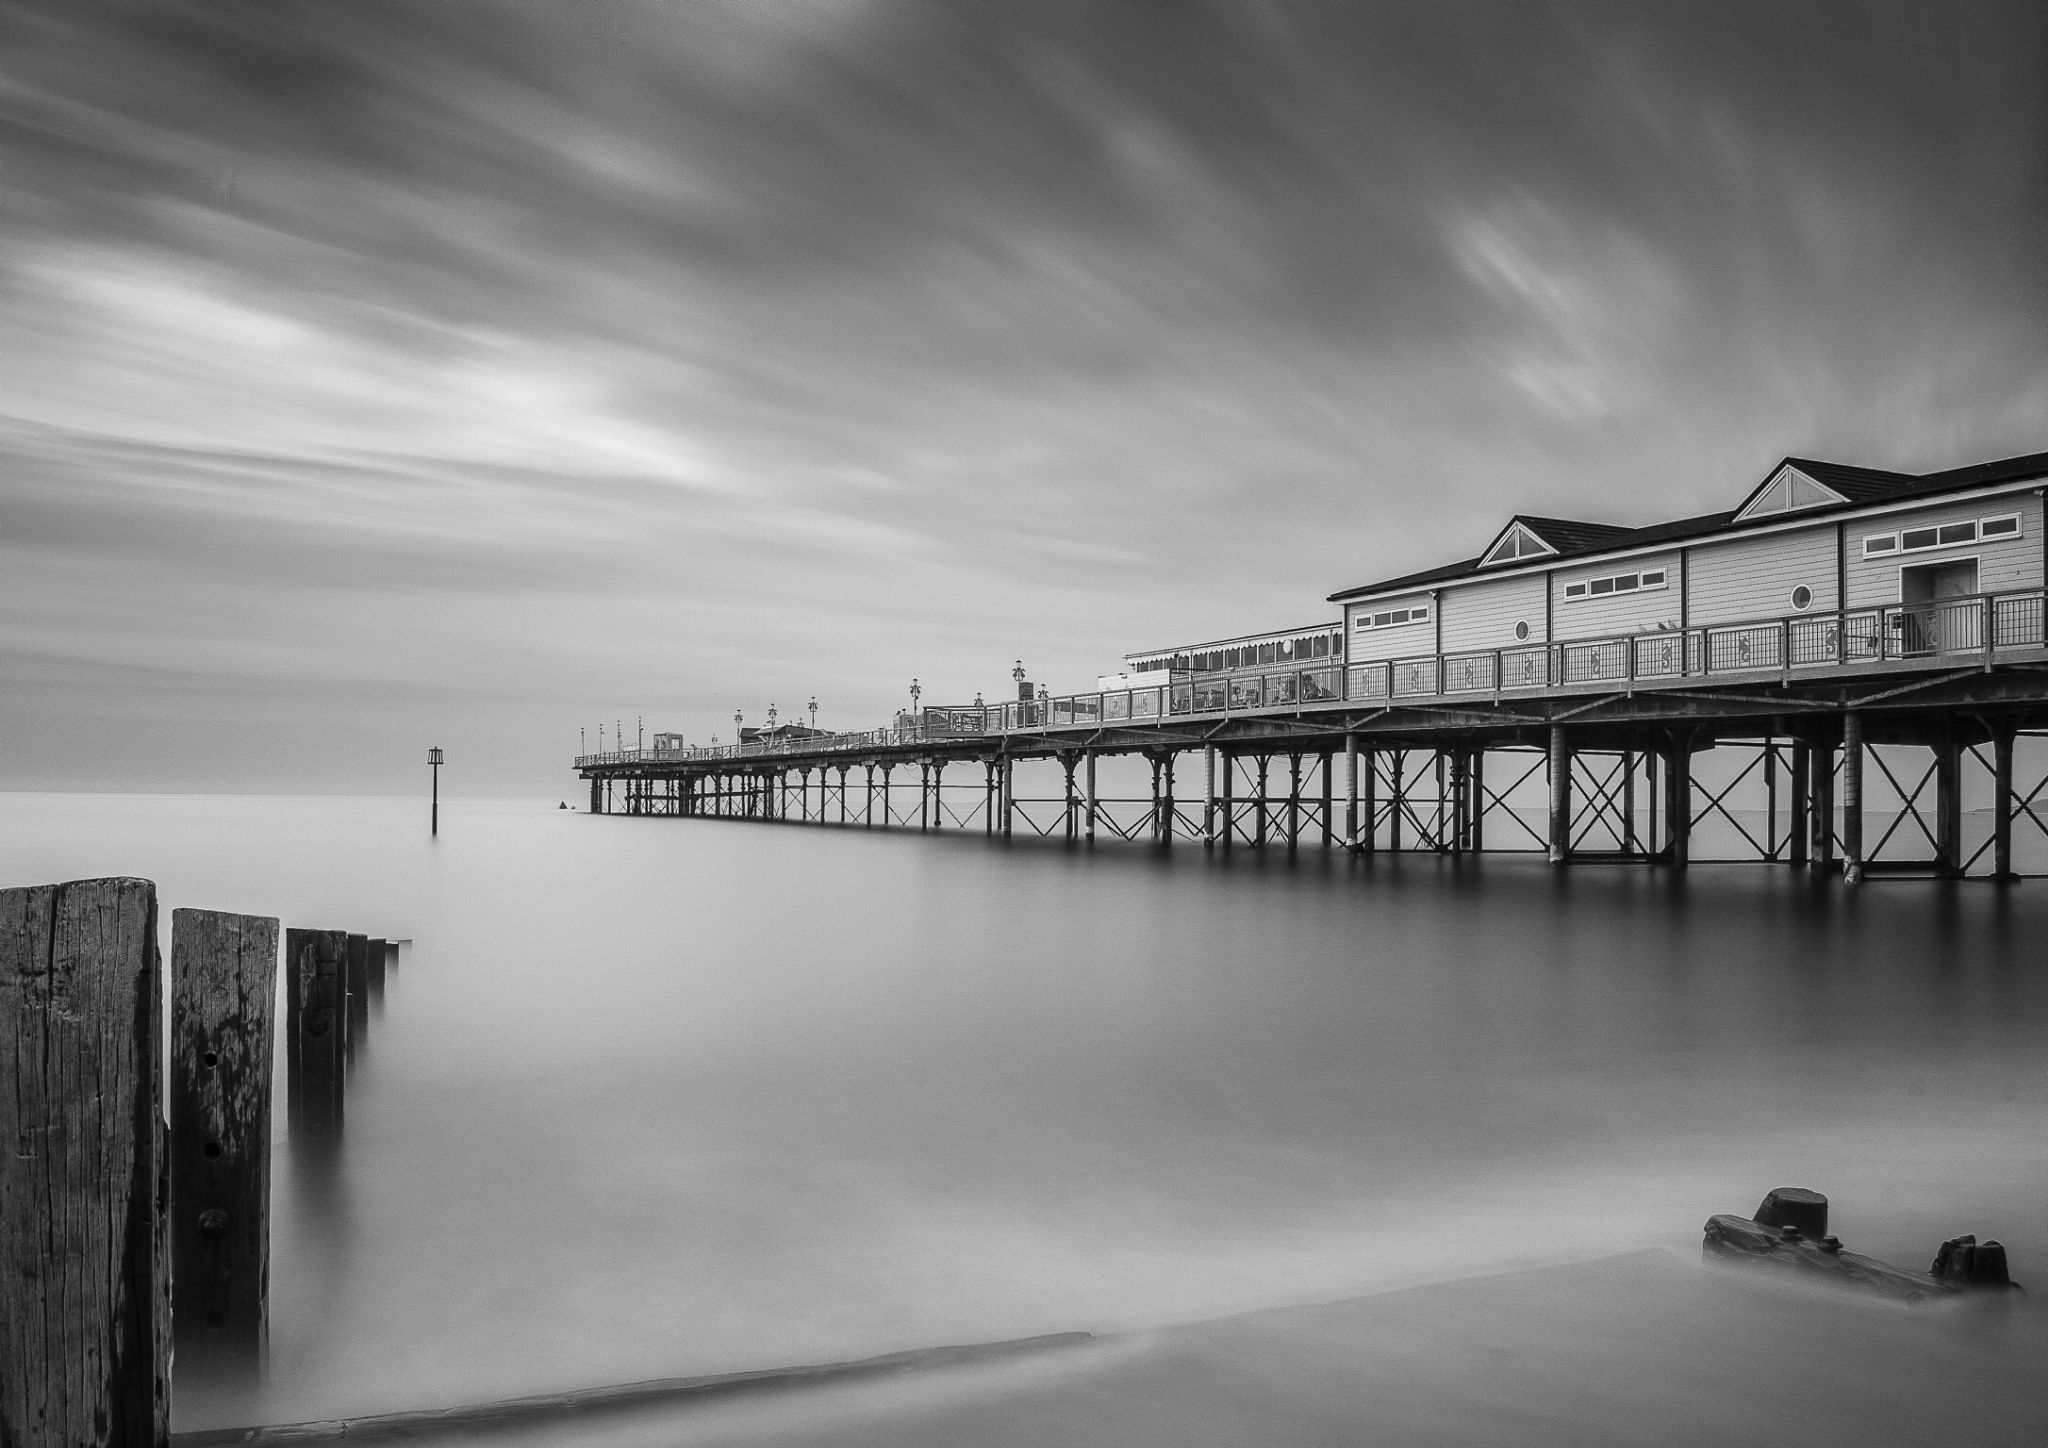 All is calm by nigel.martin.927